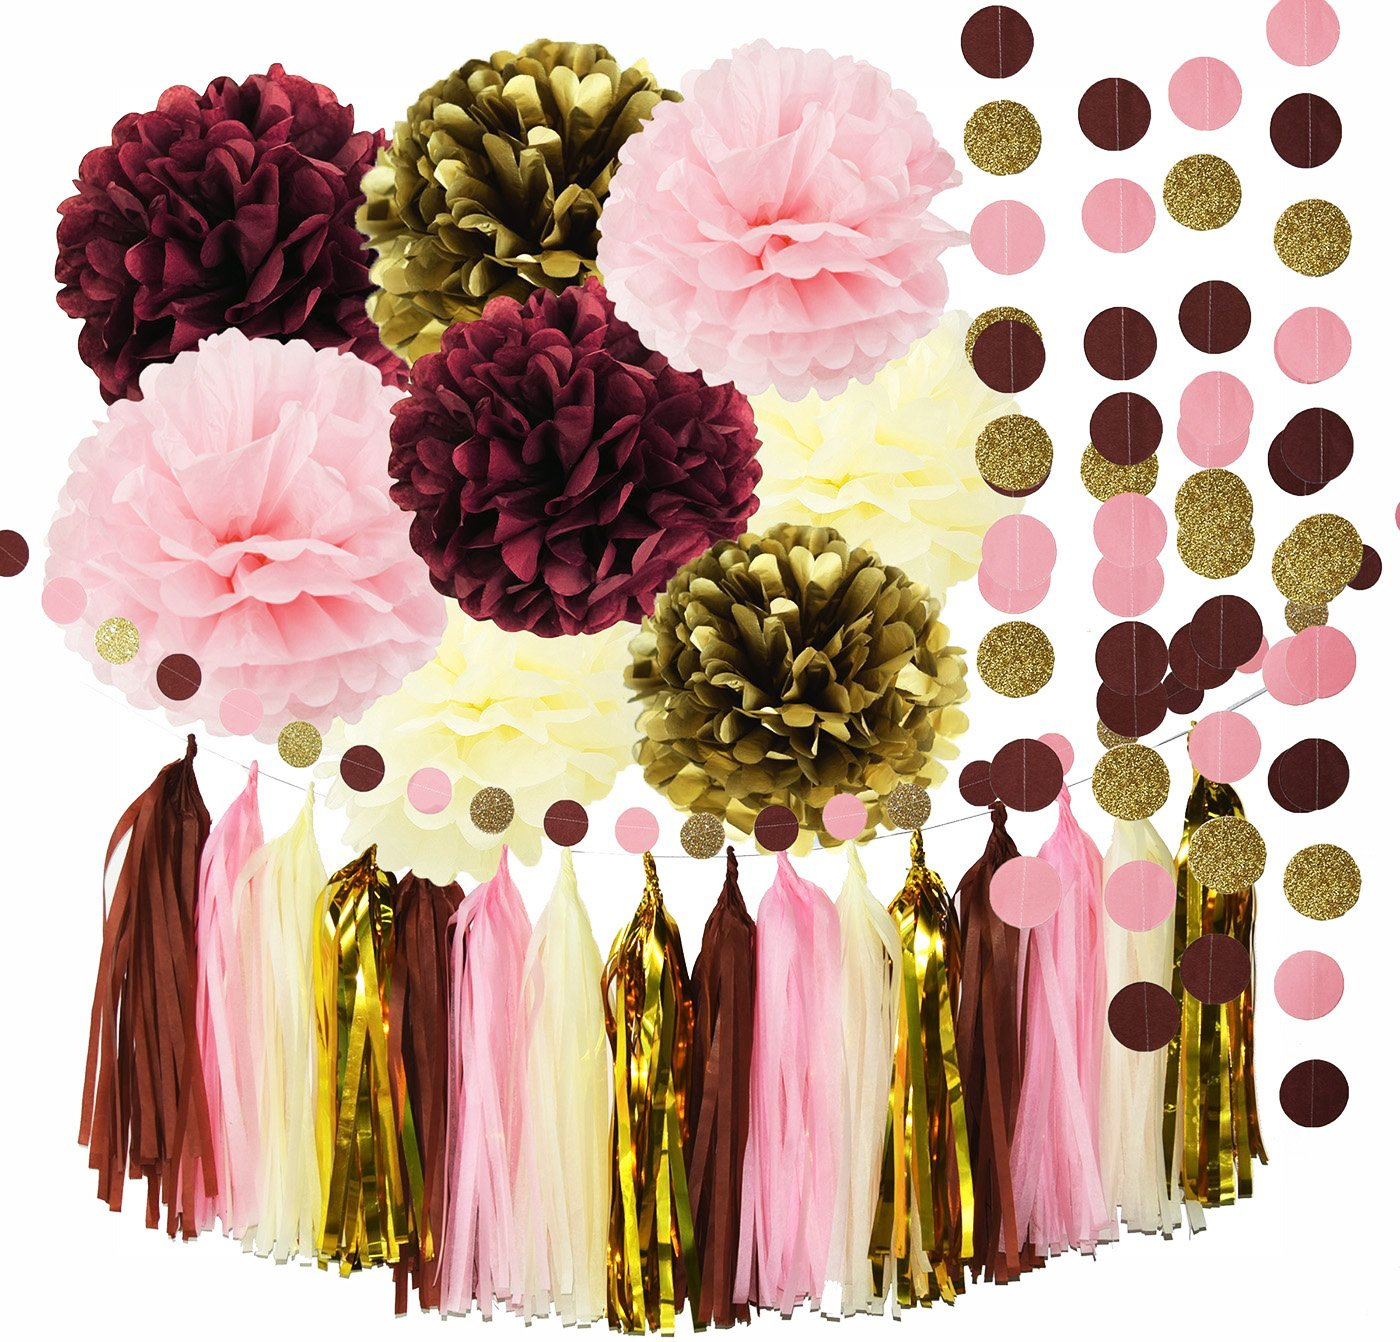 Burgundy And Gold Wedding Decorations: Qian's Party Bridal Shower Decorations Burgundy Pink